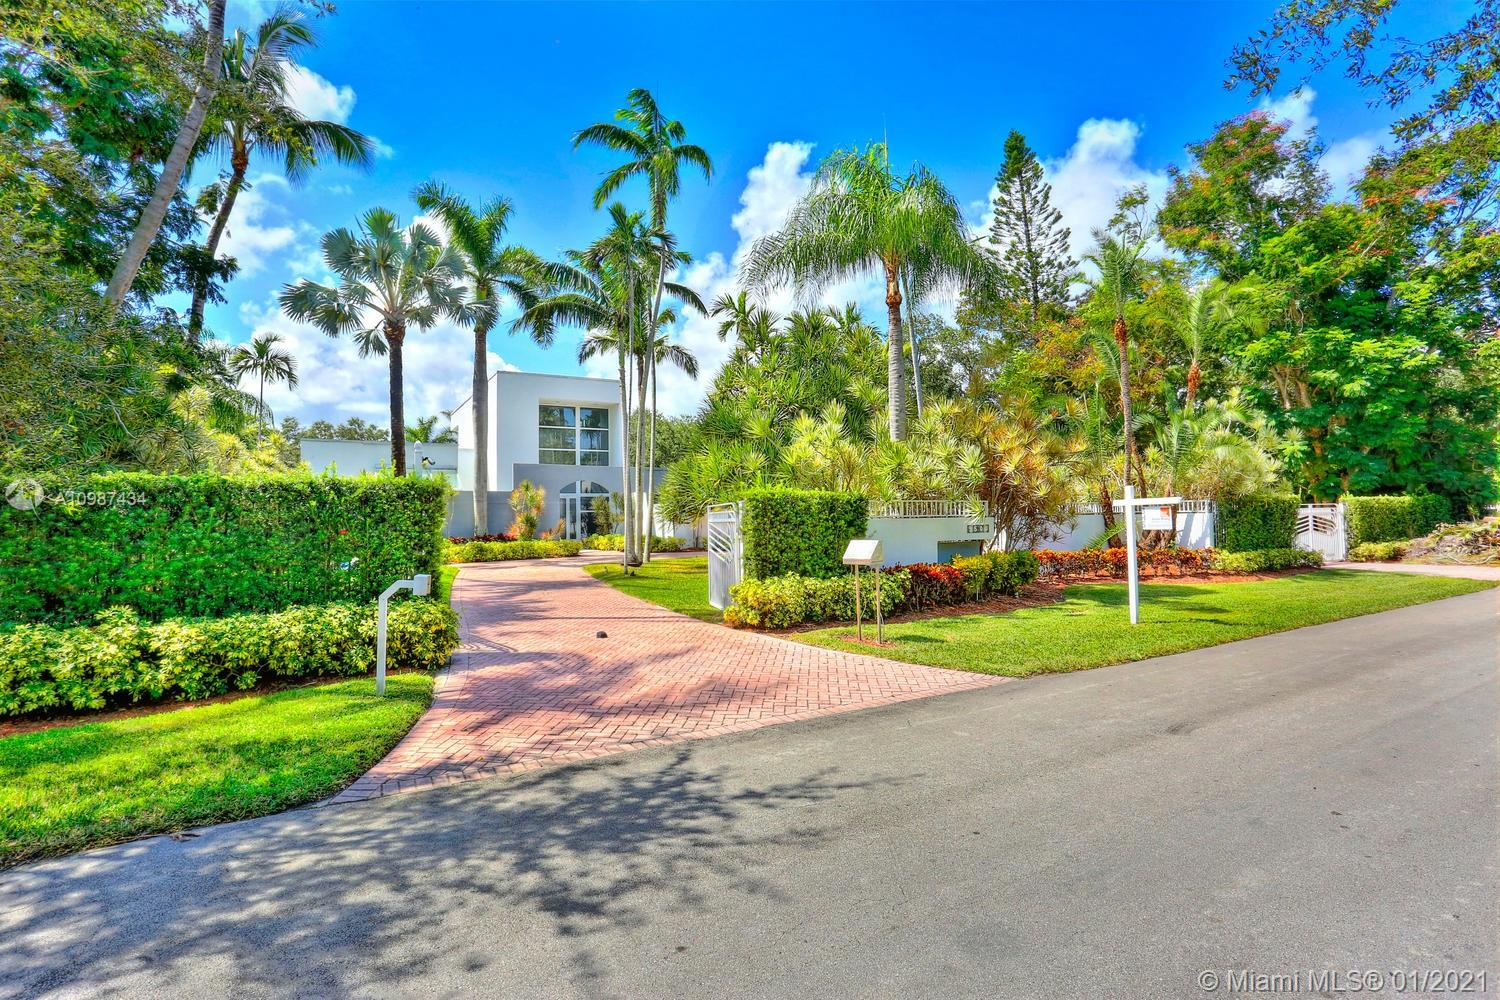 9500 SW 60th Ct, Pinecrest, Florida 33156, 6 Bedrooms Bedrooms, ,8 BathroomsBathrooms,Residential,For Sale,9500 SW 60th Ct,A10987434